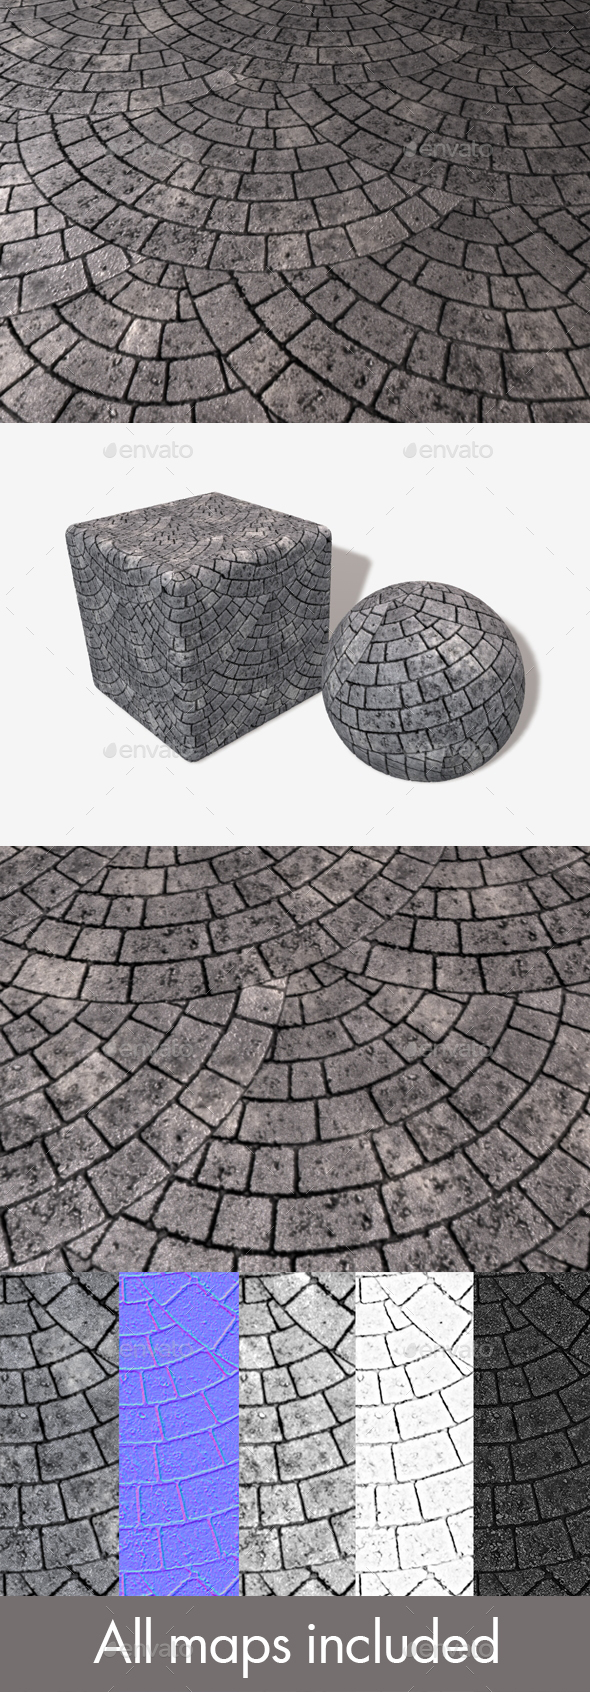 Circular Grey Brick Paving Seamless Texture - 3DOcean Item for Sale